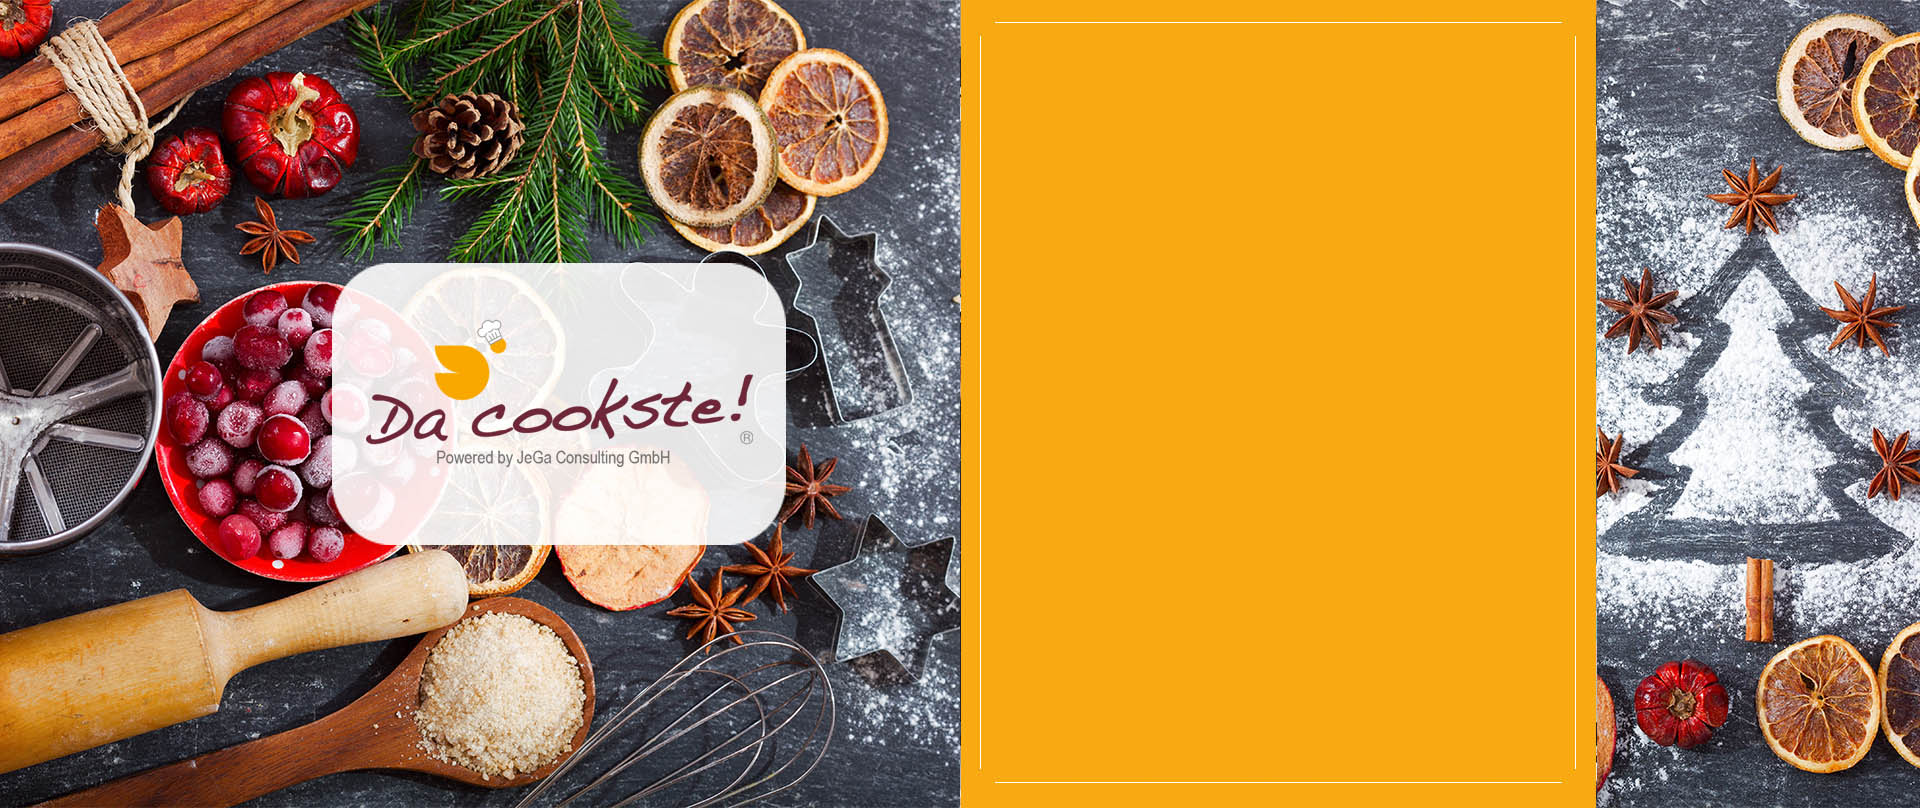 dacookste.de-Ingredients for cooking Christmas baking